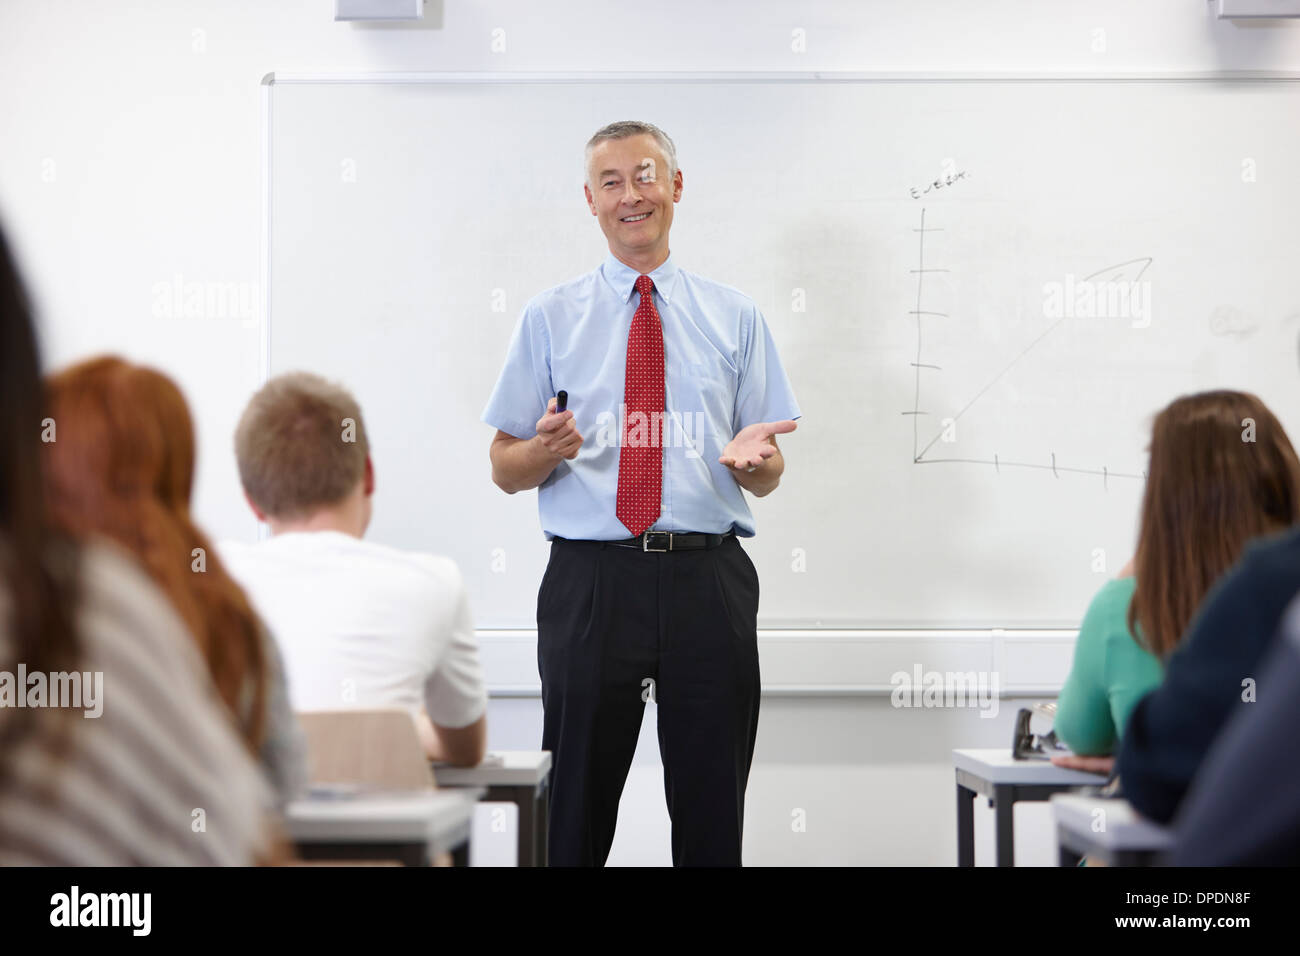 Mature male teacher in front of class - Stock Image